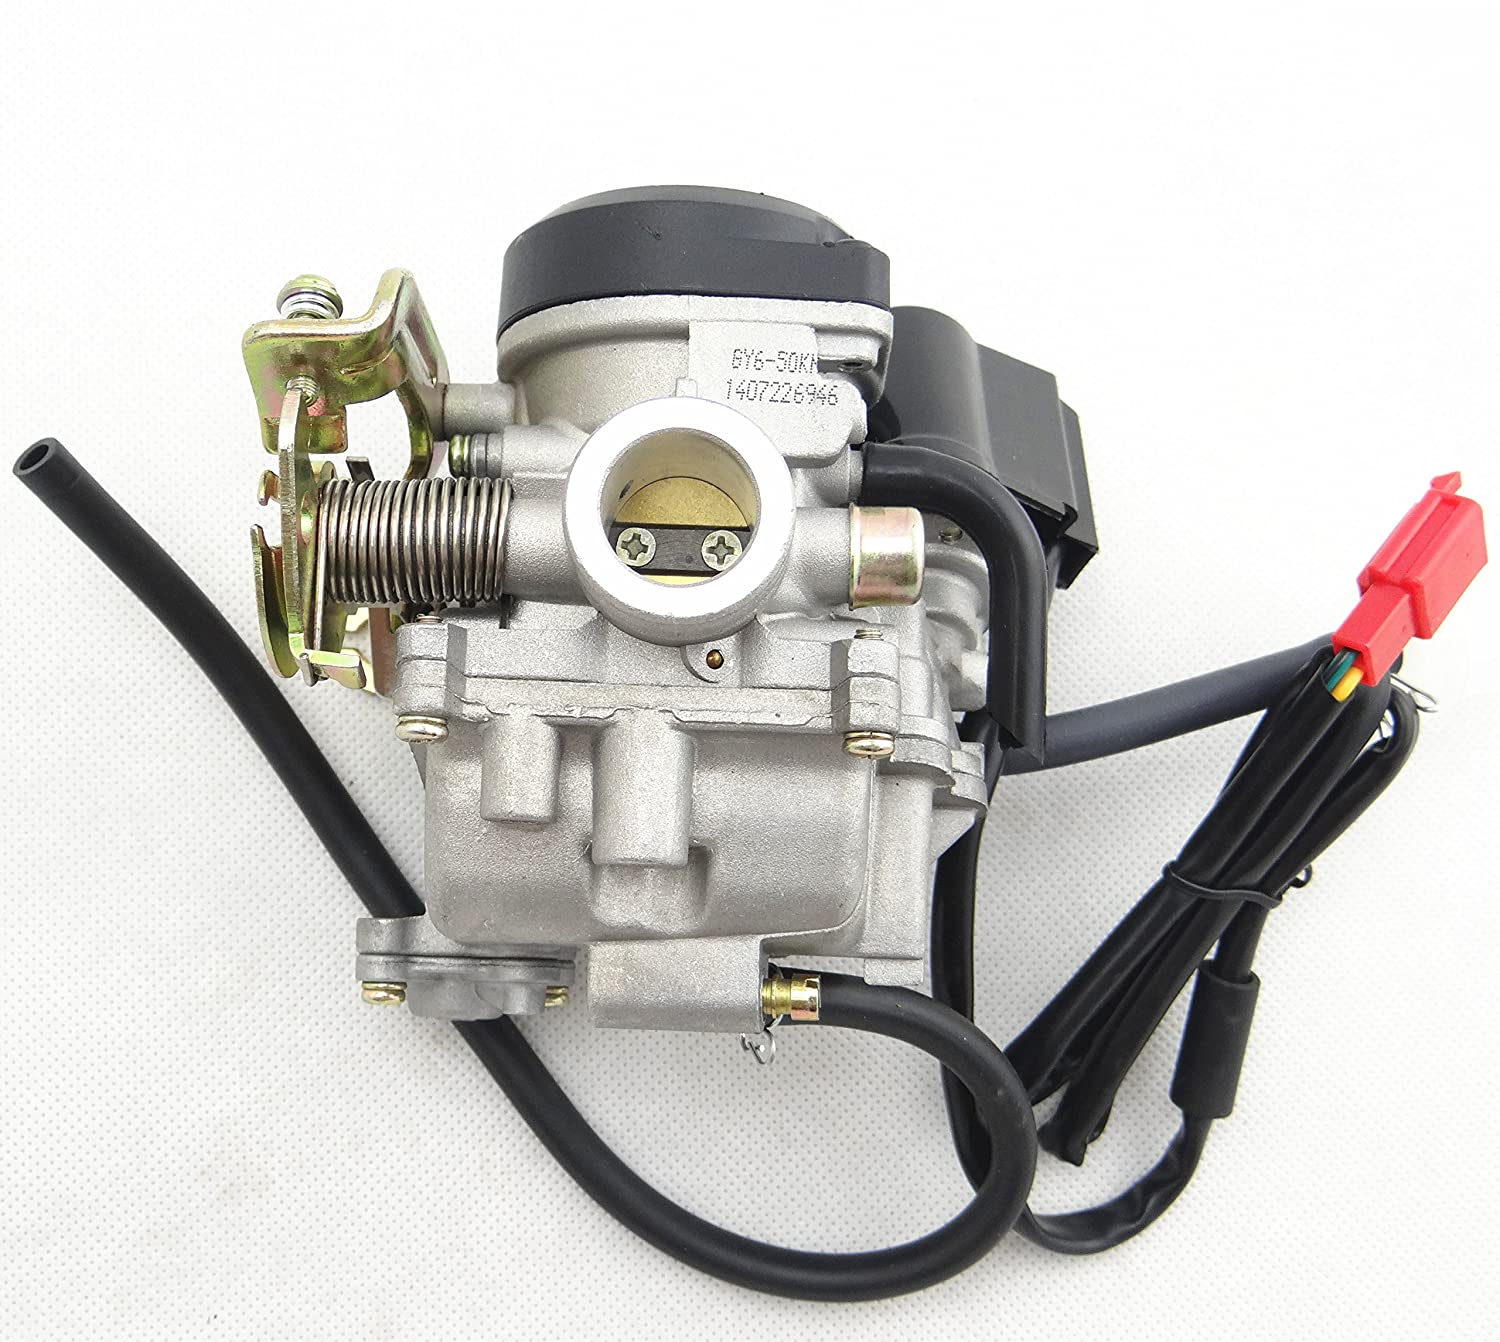 Co-riding Carb Carburetor for 4 Stroke GY6 49cc 50cc Chinese Scooter Moped  139QMB Taotao Kymco